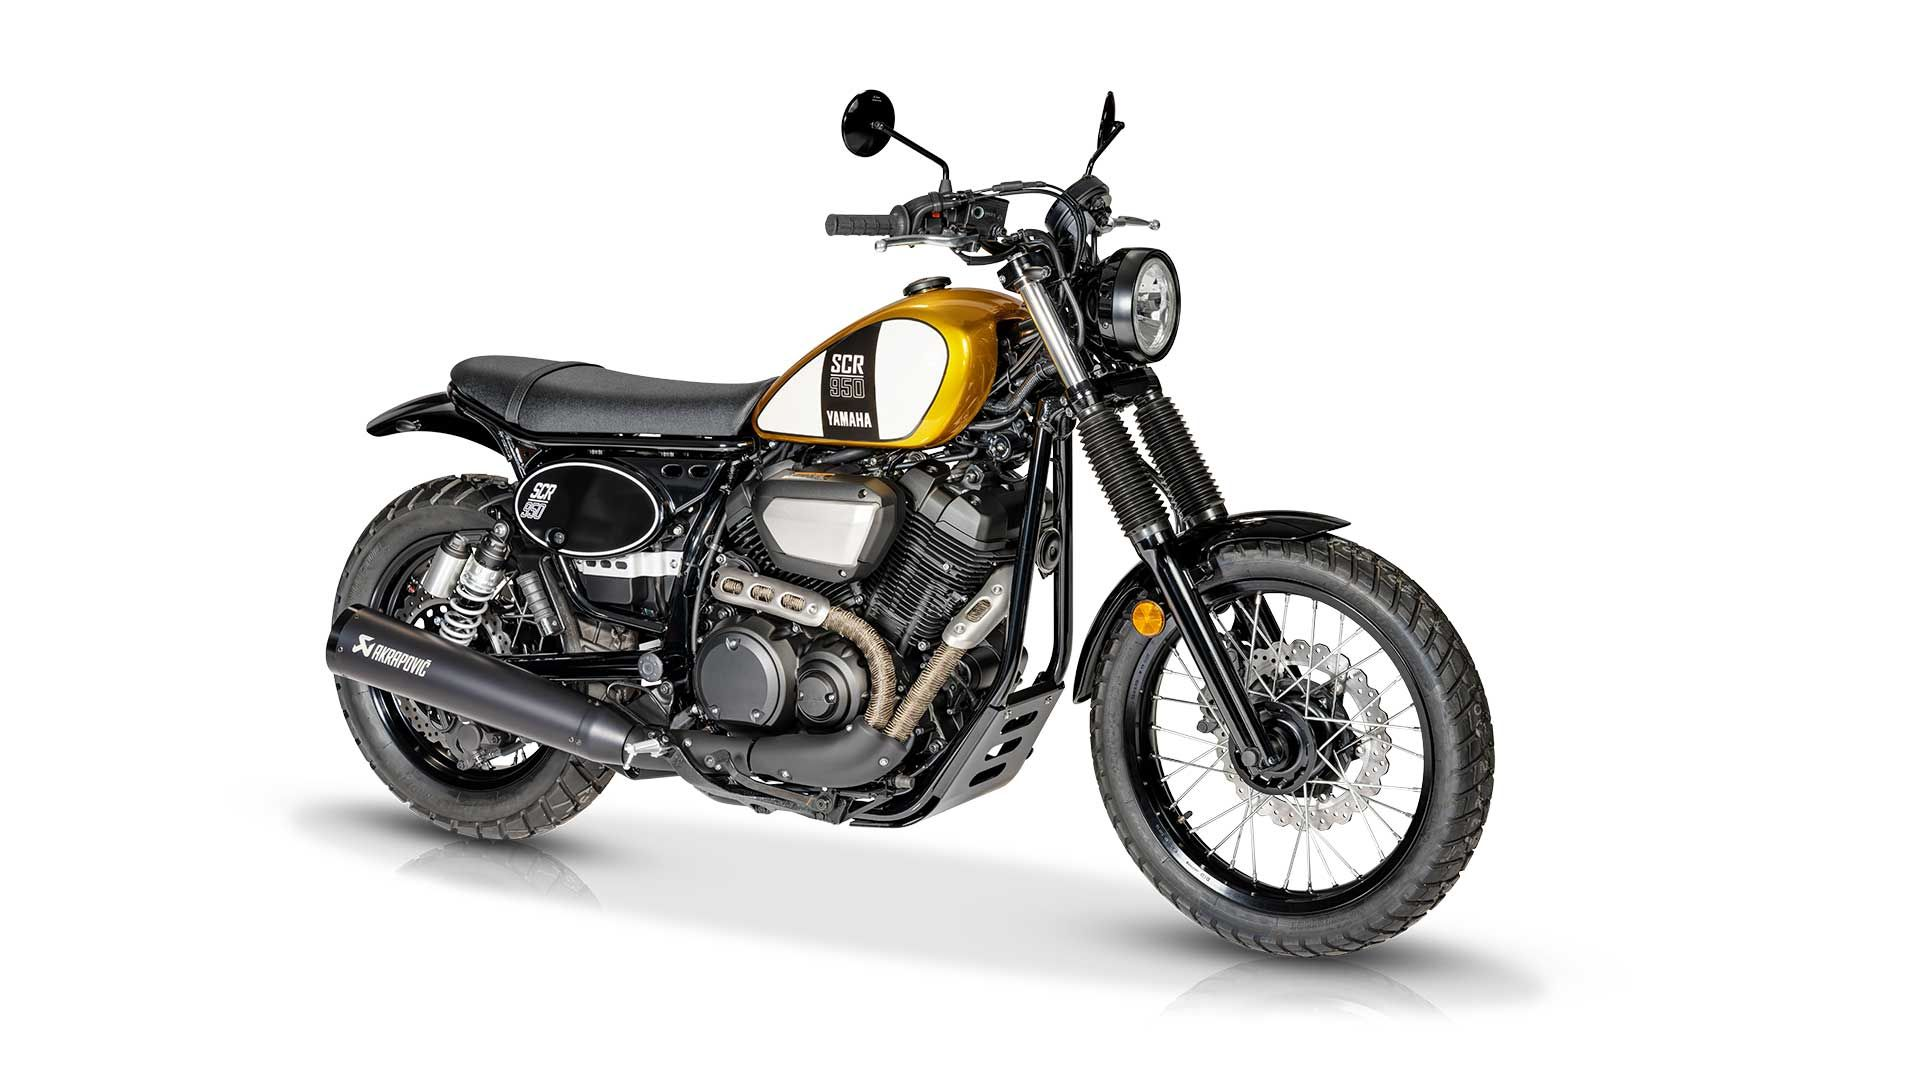 Yamaha SCR950 Gold Edition